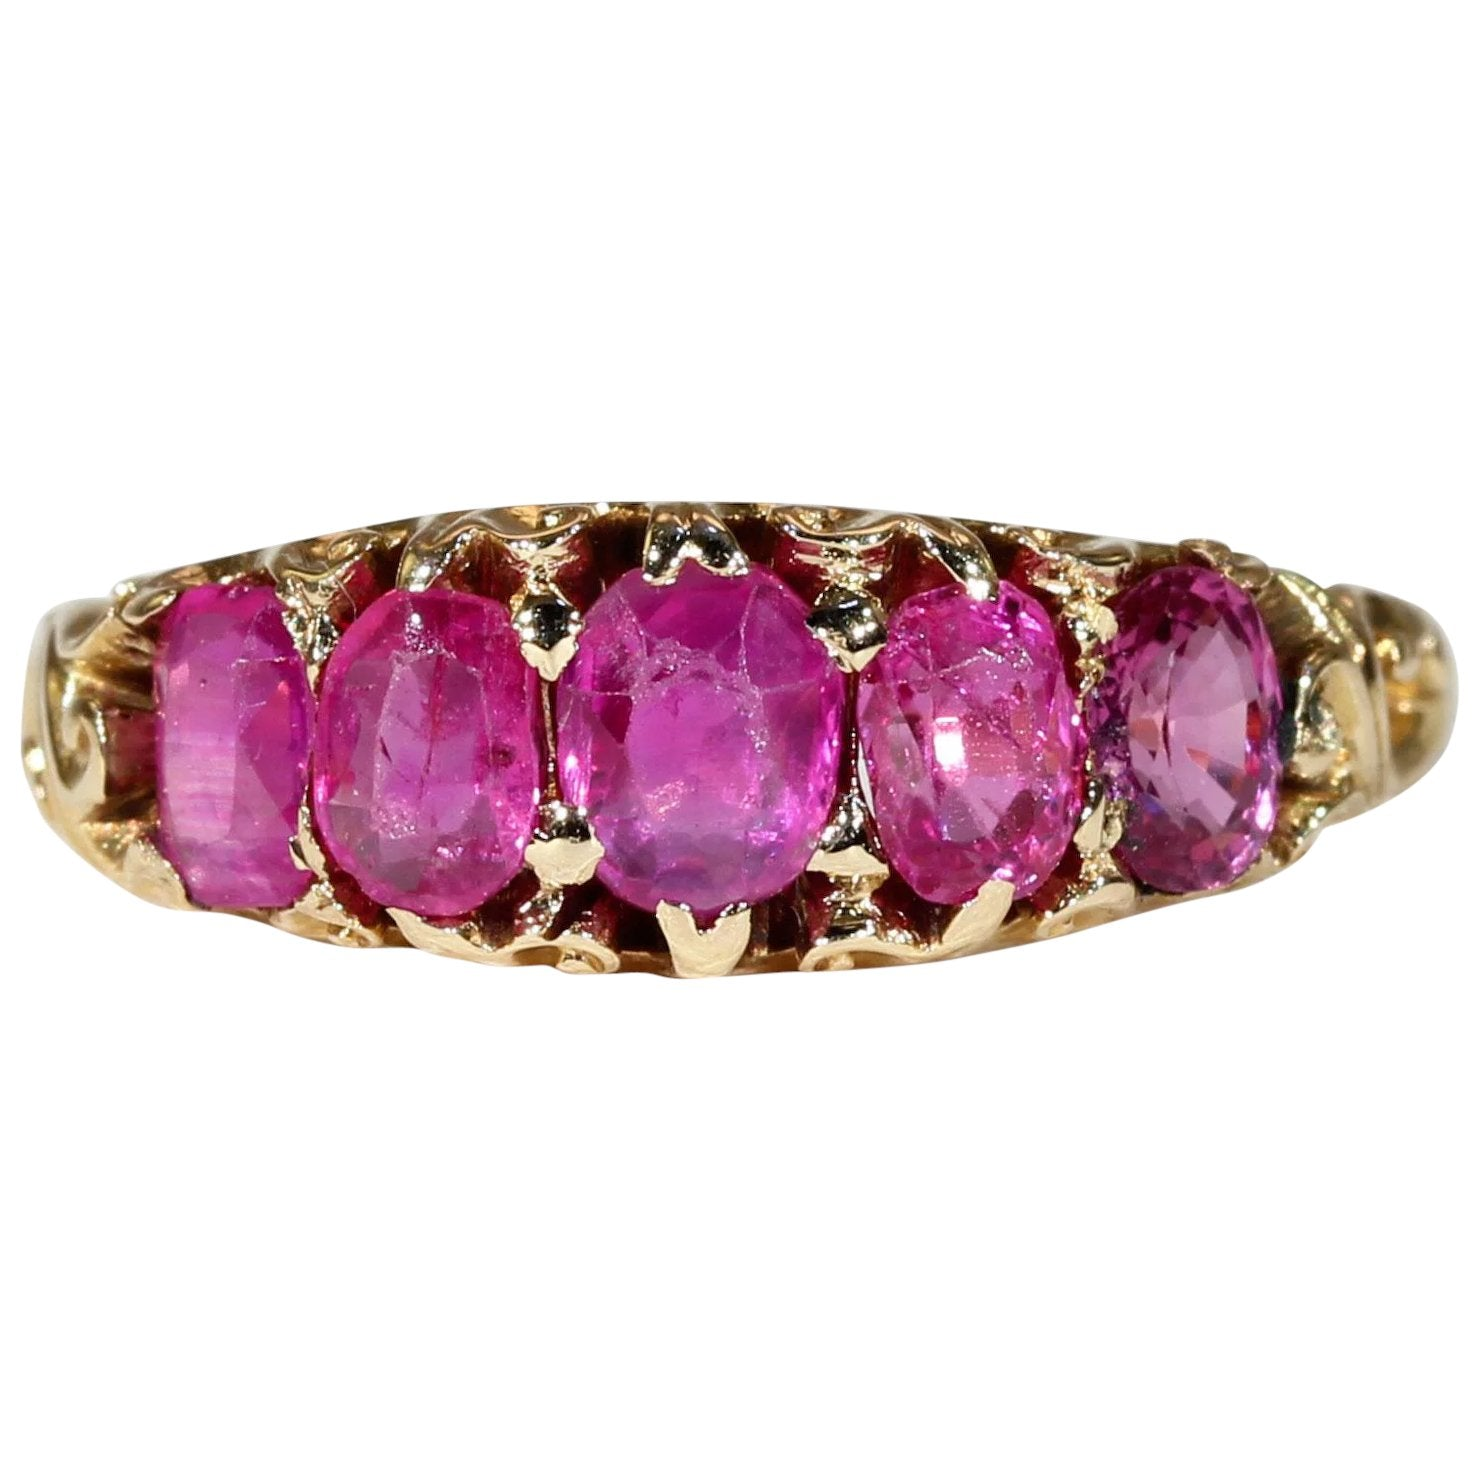 Victorian Half Hoop 5 Stone Ruby Ring Gold - Victoria Sterling ...